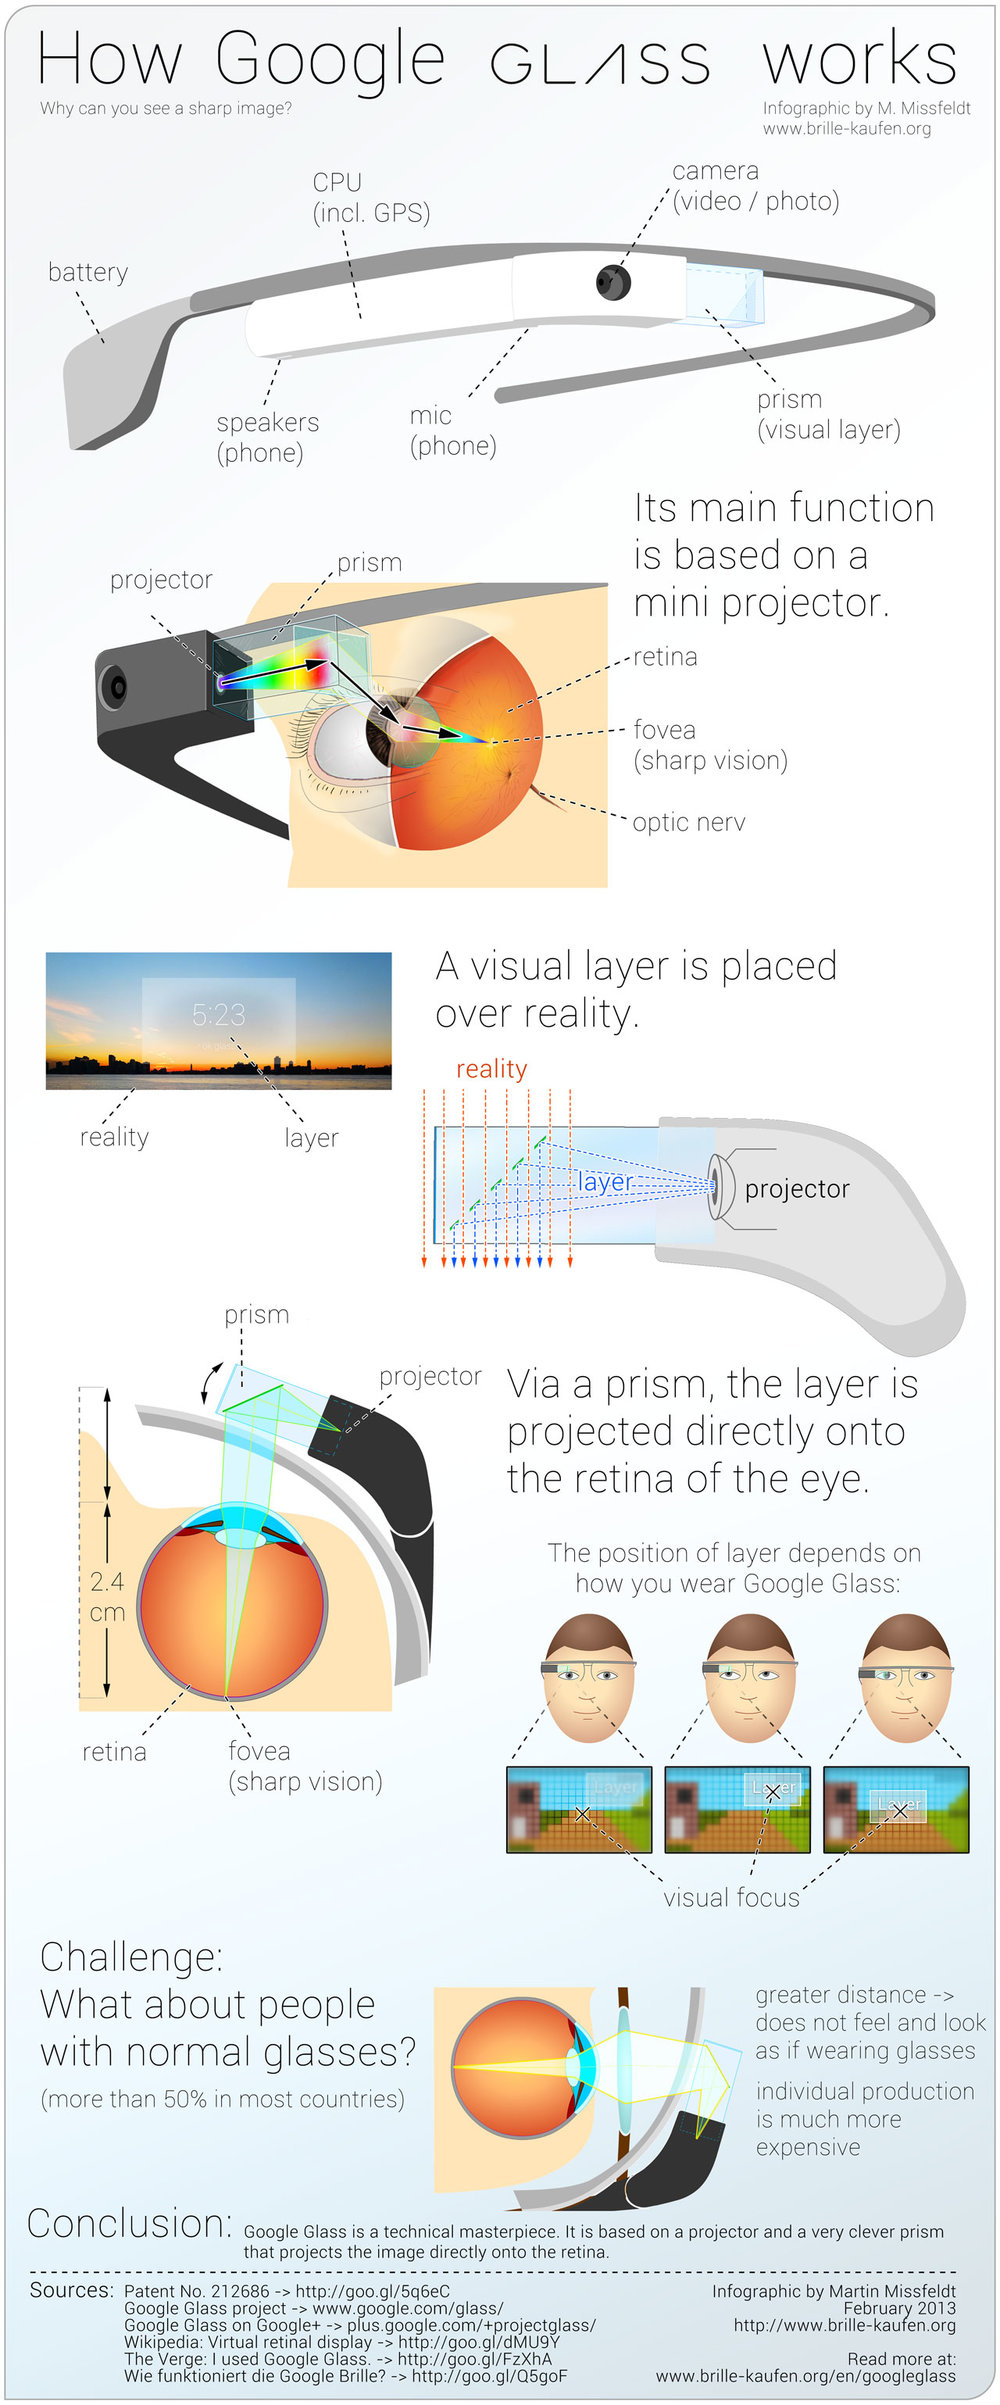 Image: http://www.kurzweilai.net/google-glass-how-it-works-infographic